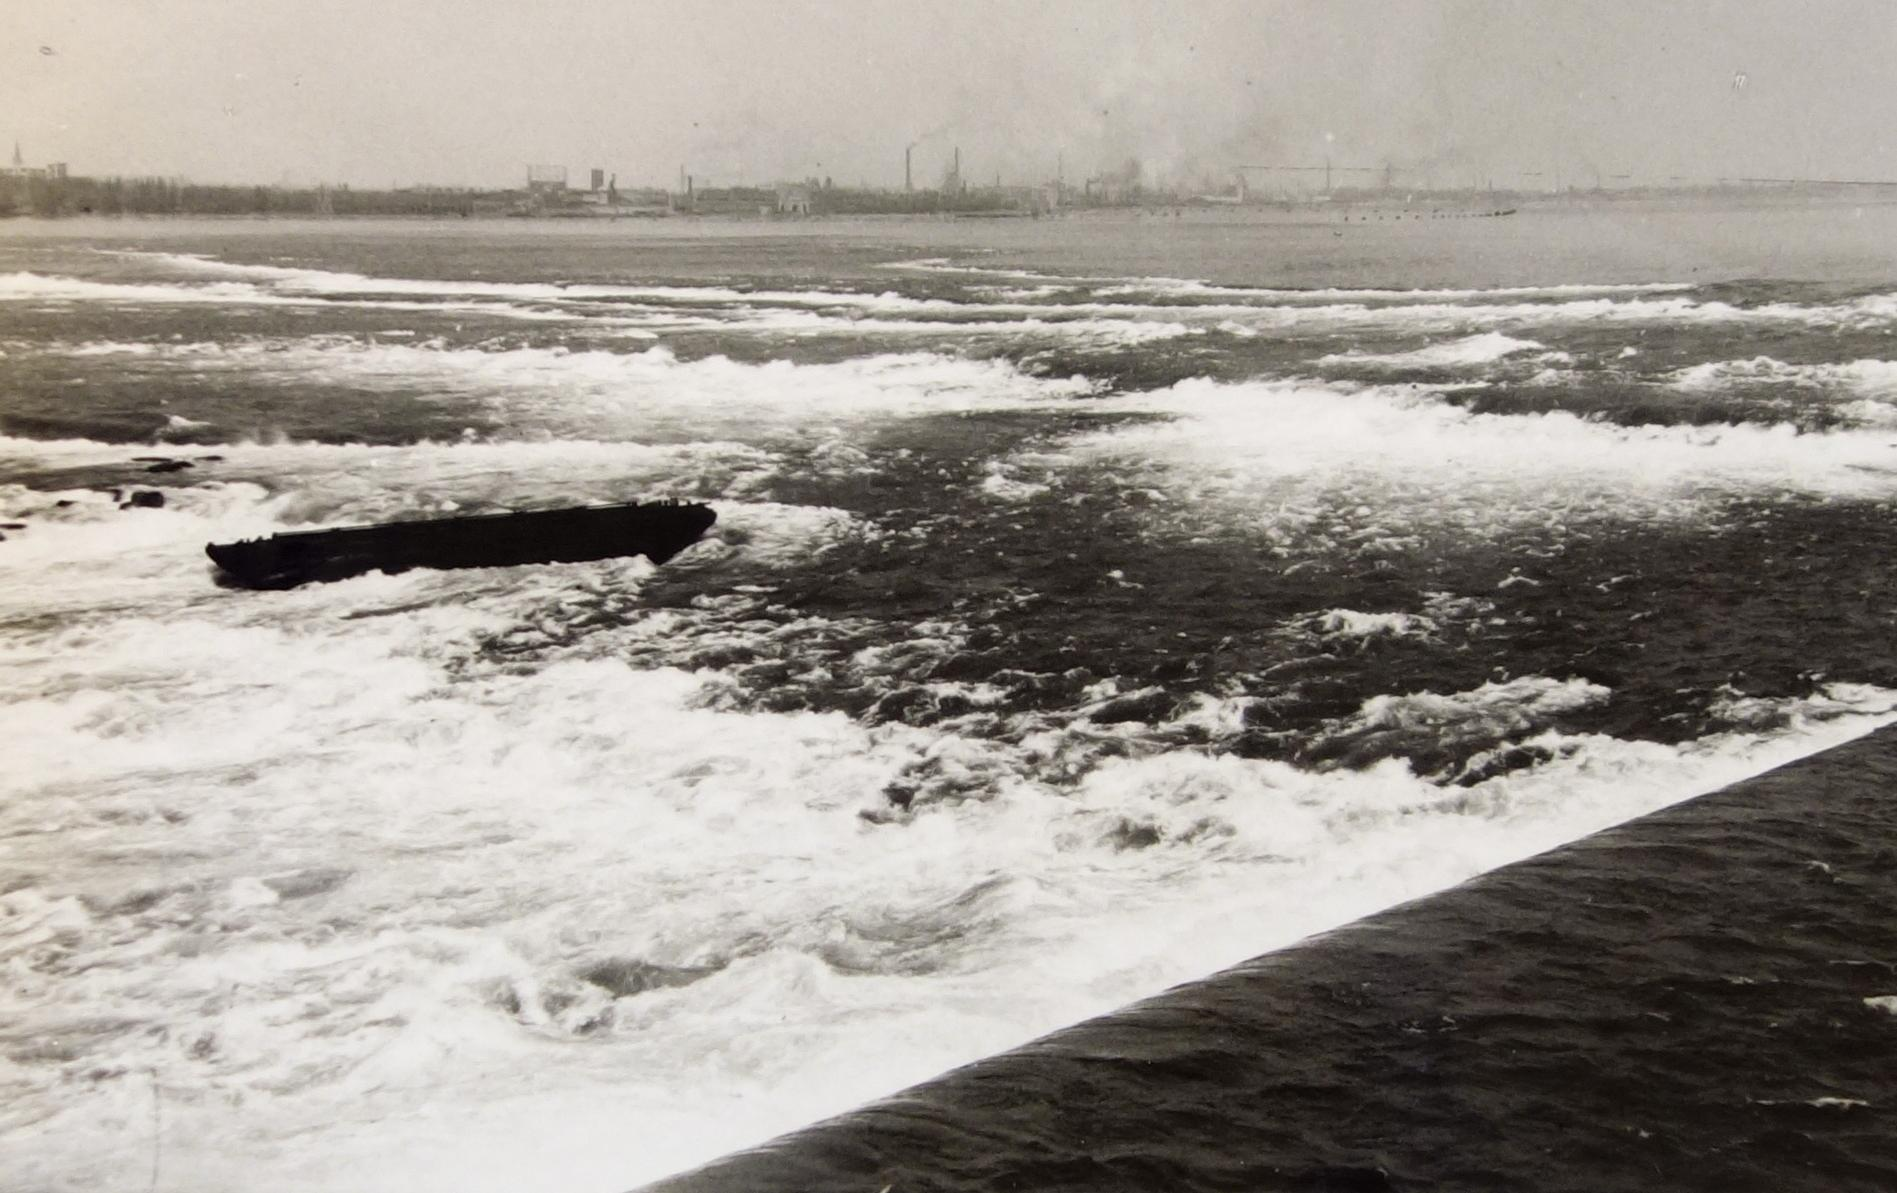 Black and white photograph of the Scow, a barge, in the middle of the River above the Falls. White water rapids surround the Scow as the water hits of the rocks which surround it in  the lead up to the Falls. The industry of Niagara Falls New York appears in the background. The Scow is very dark and showing signs of wear in the image with a couple of pieces missing.